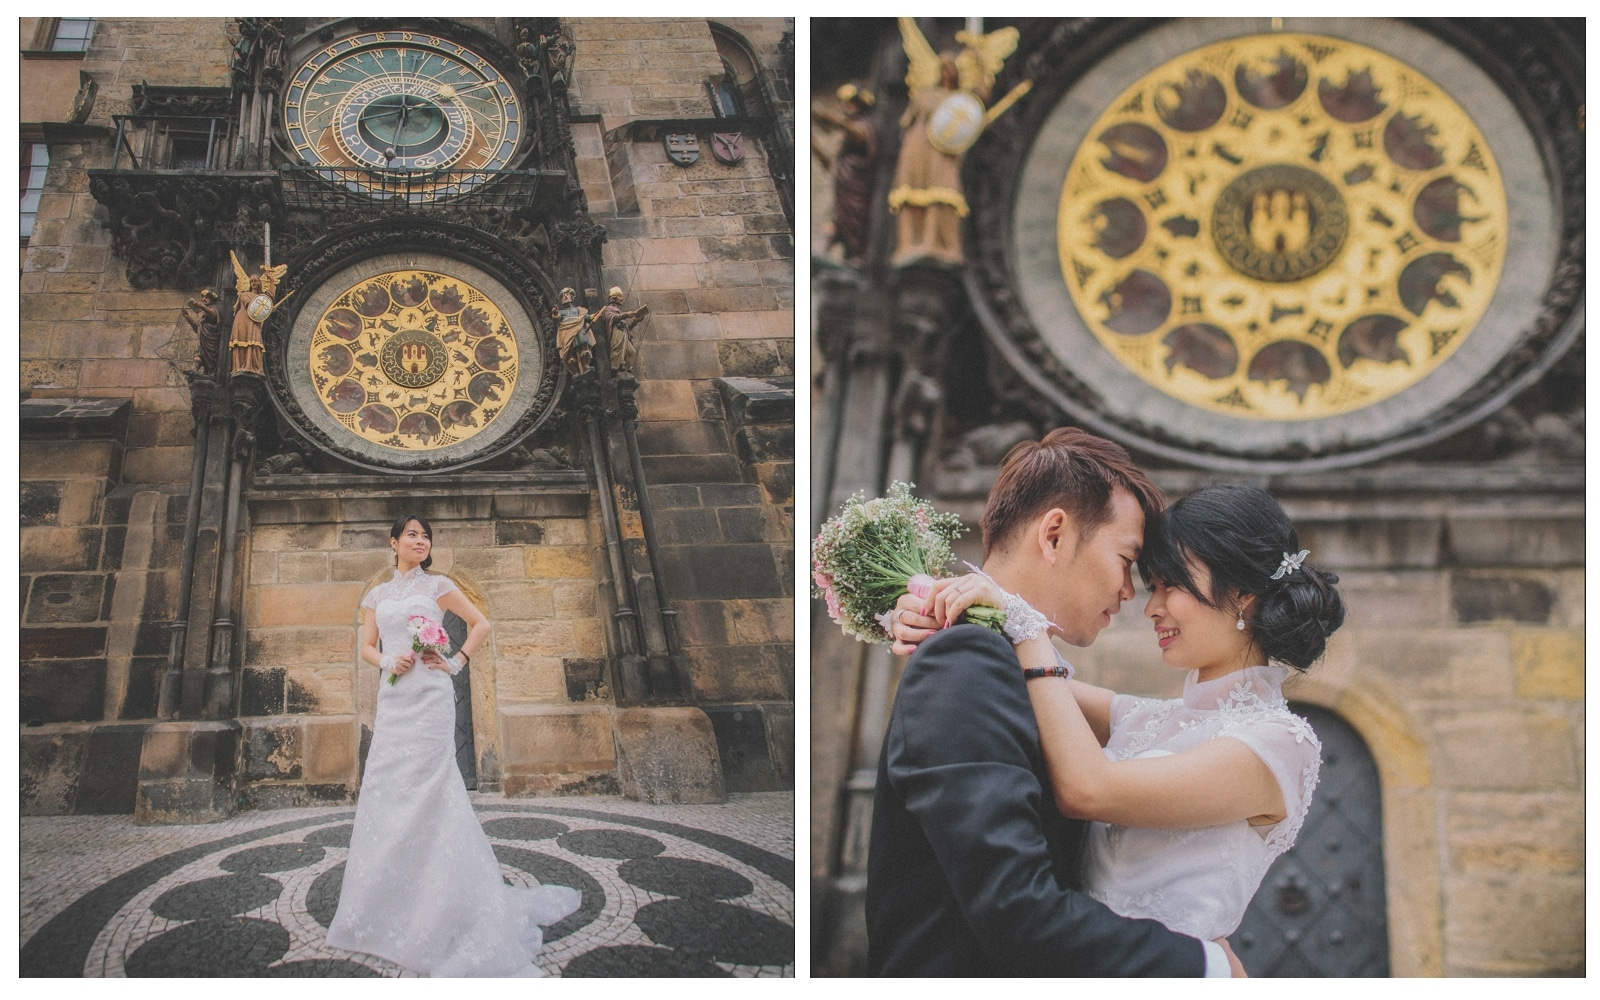 Prague pre wedding / Sharon & Danny Fall portraits session at The Astronomical Clock